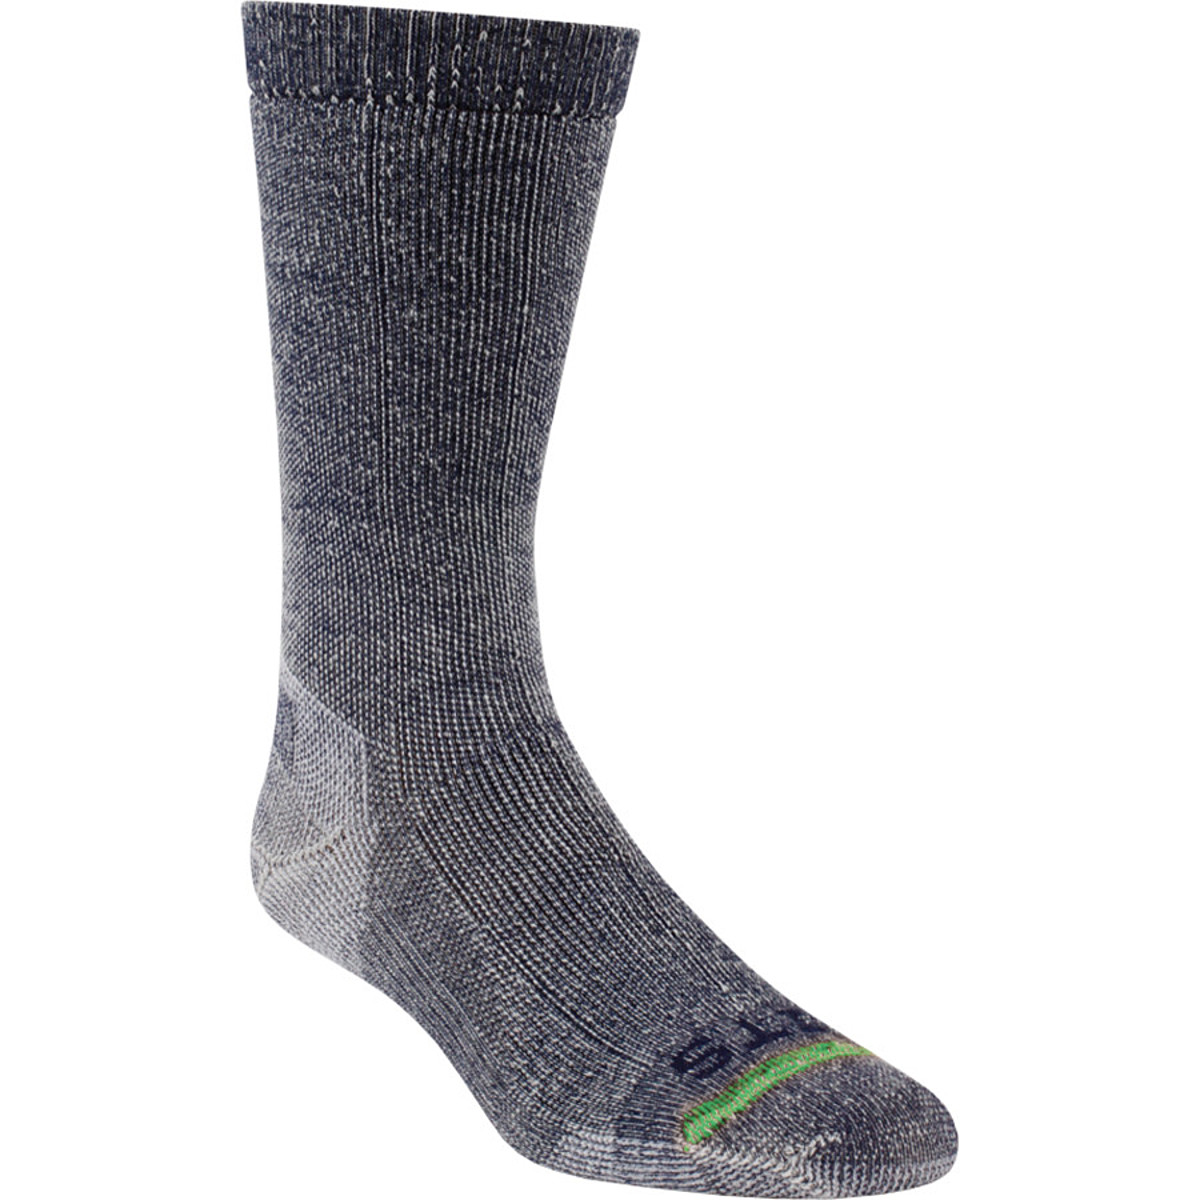 FITS Sock Light Rugged Crew